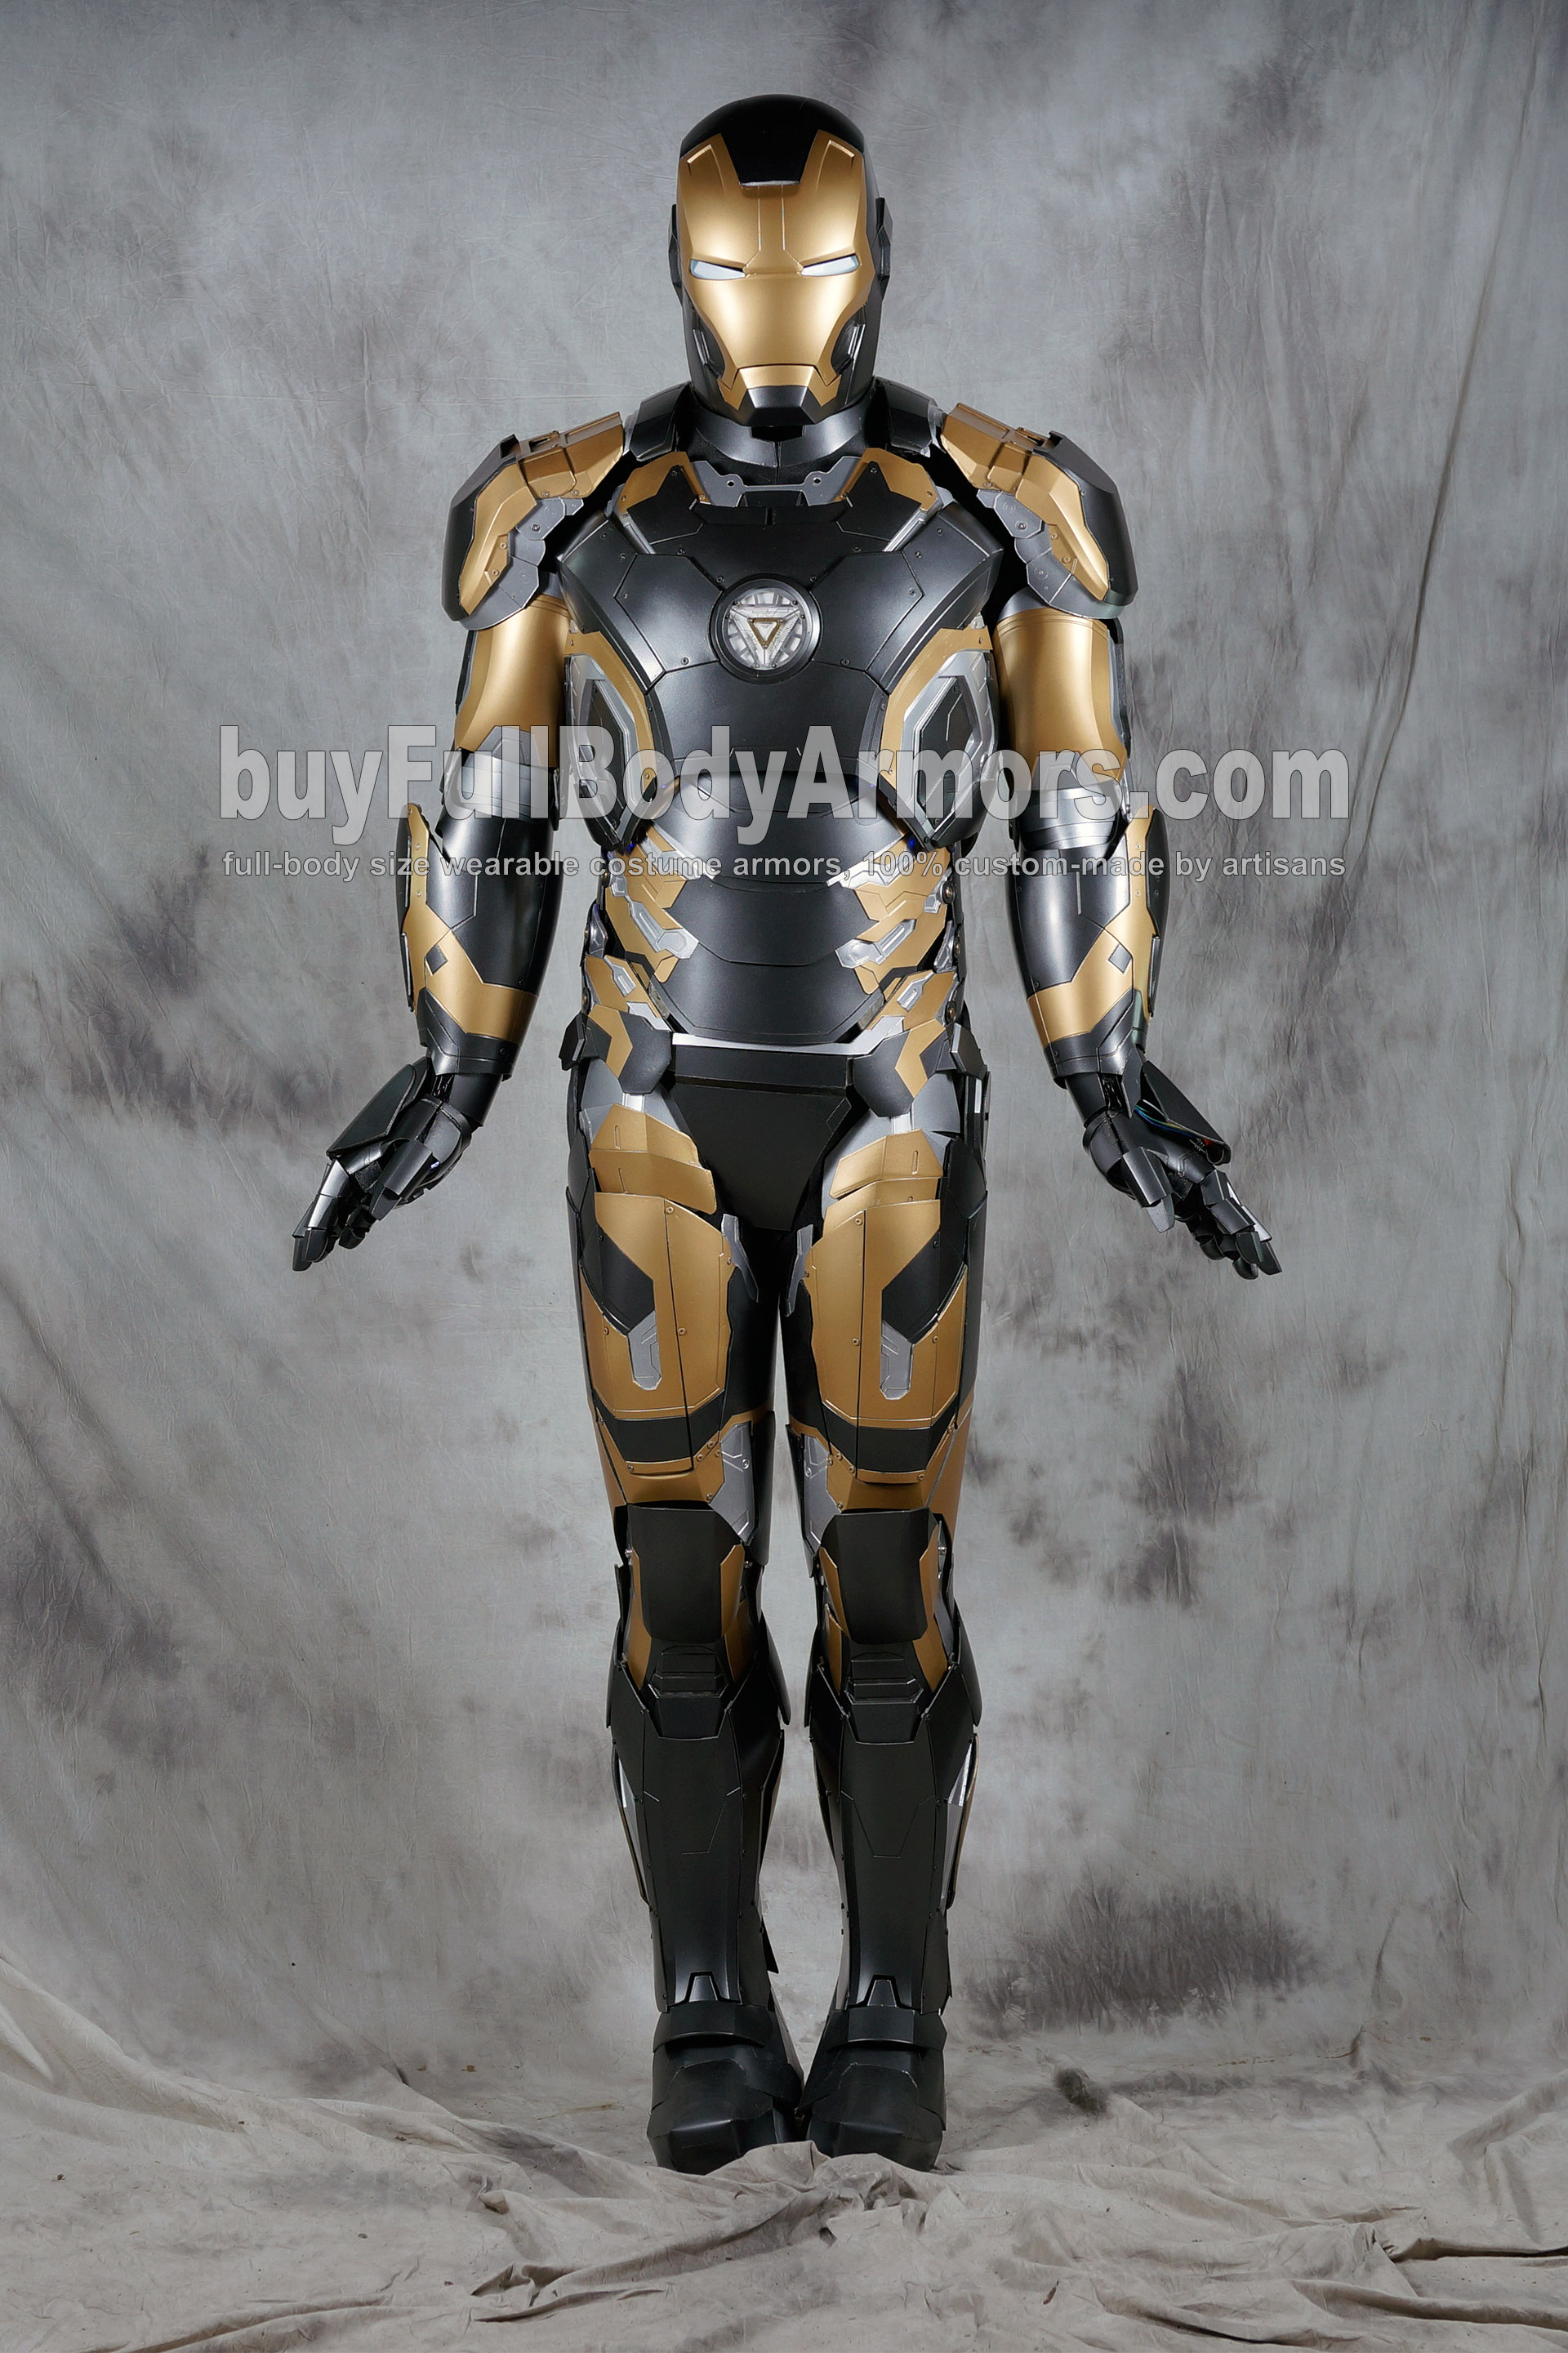 [Special Edition] Black Gold Wearable Iron Man Suit Mark 43 XLIII Armor Costume  4